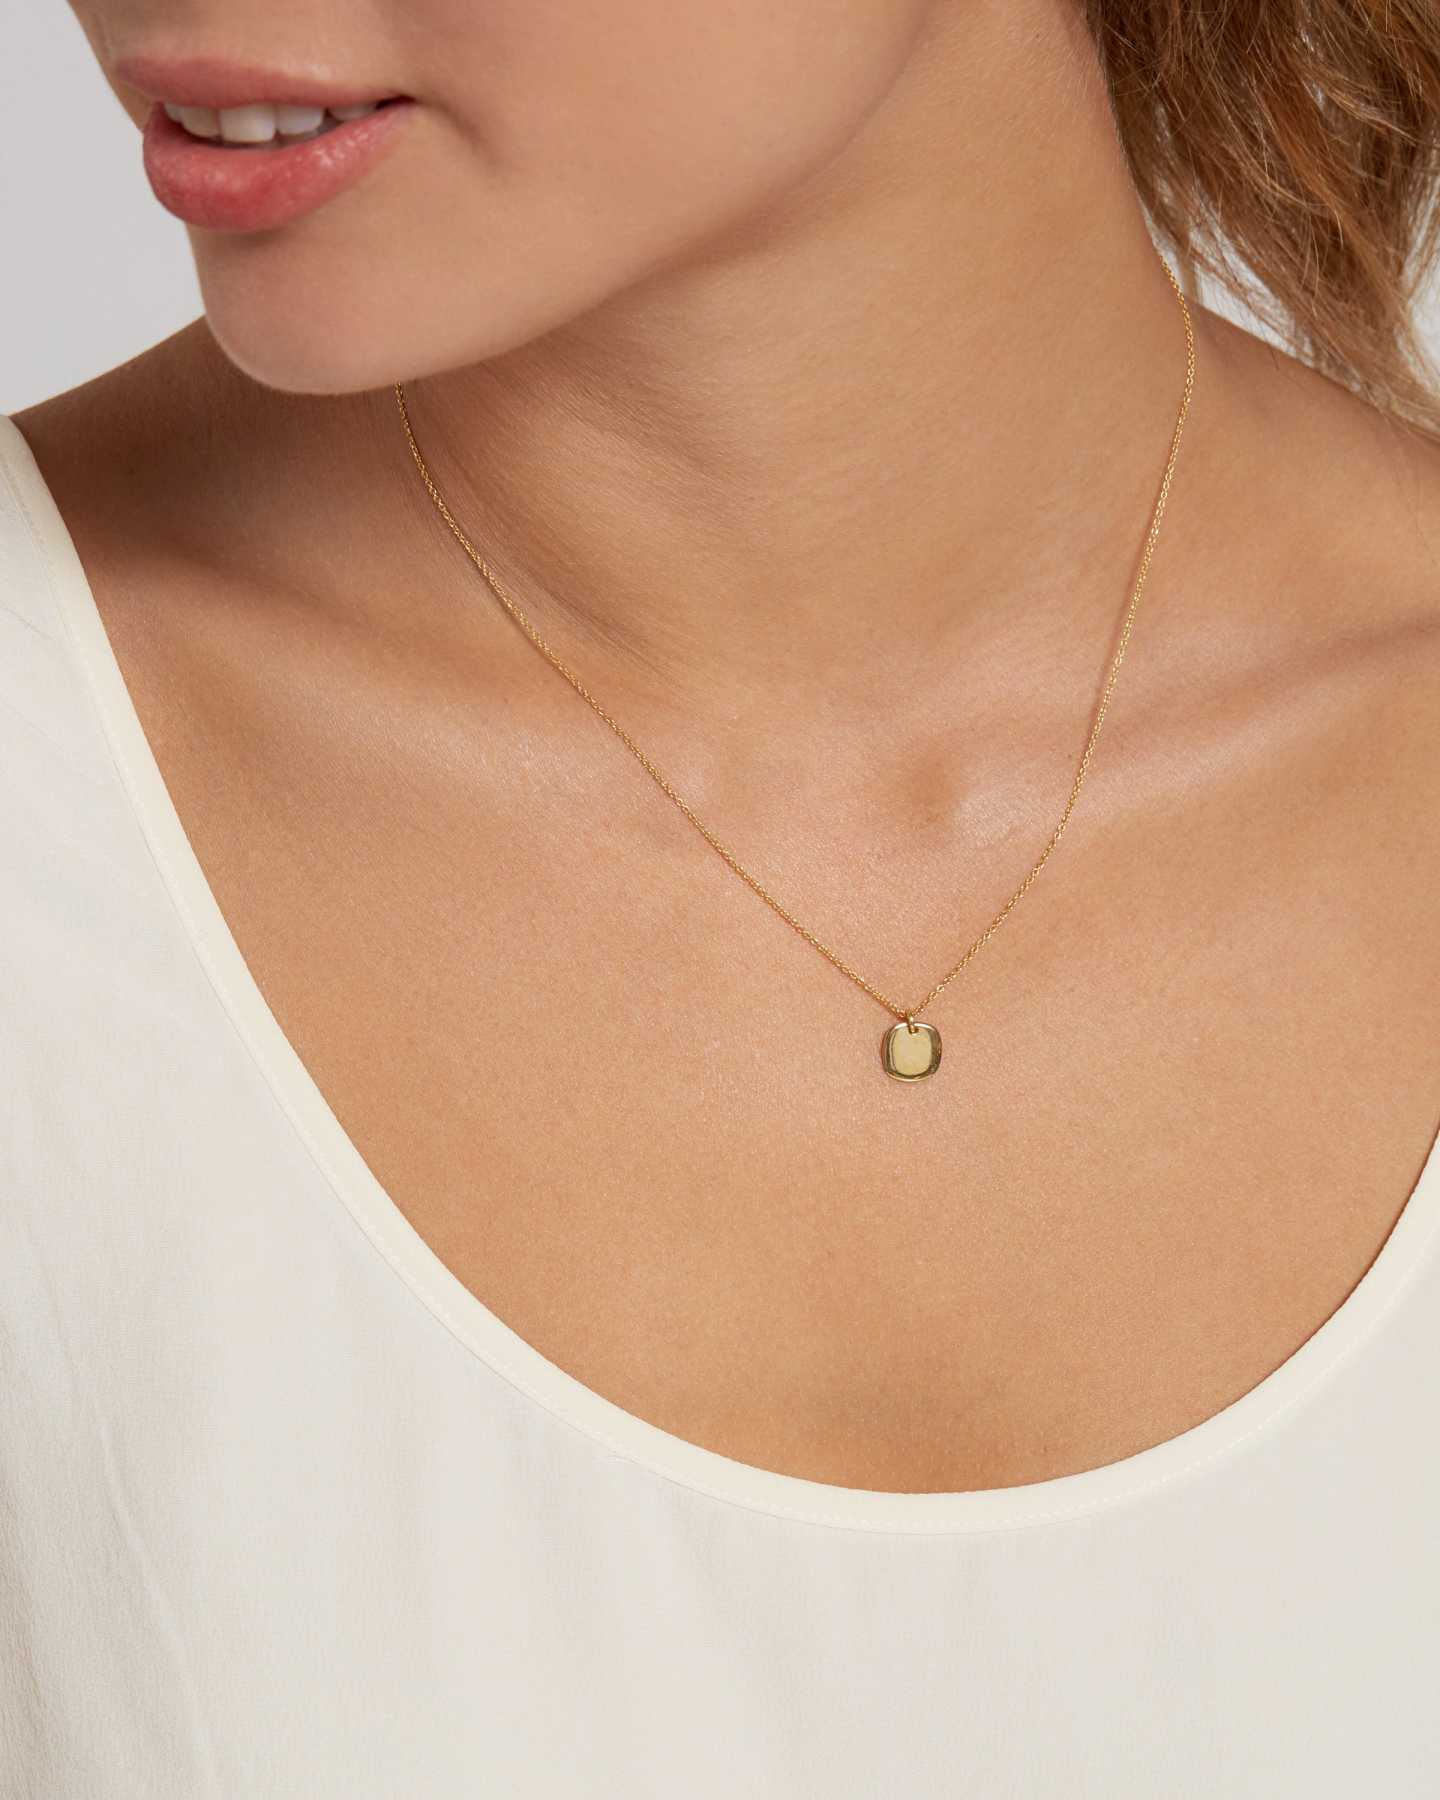 Gold Disc Necklace - Gold Vermeil - 1